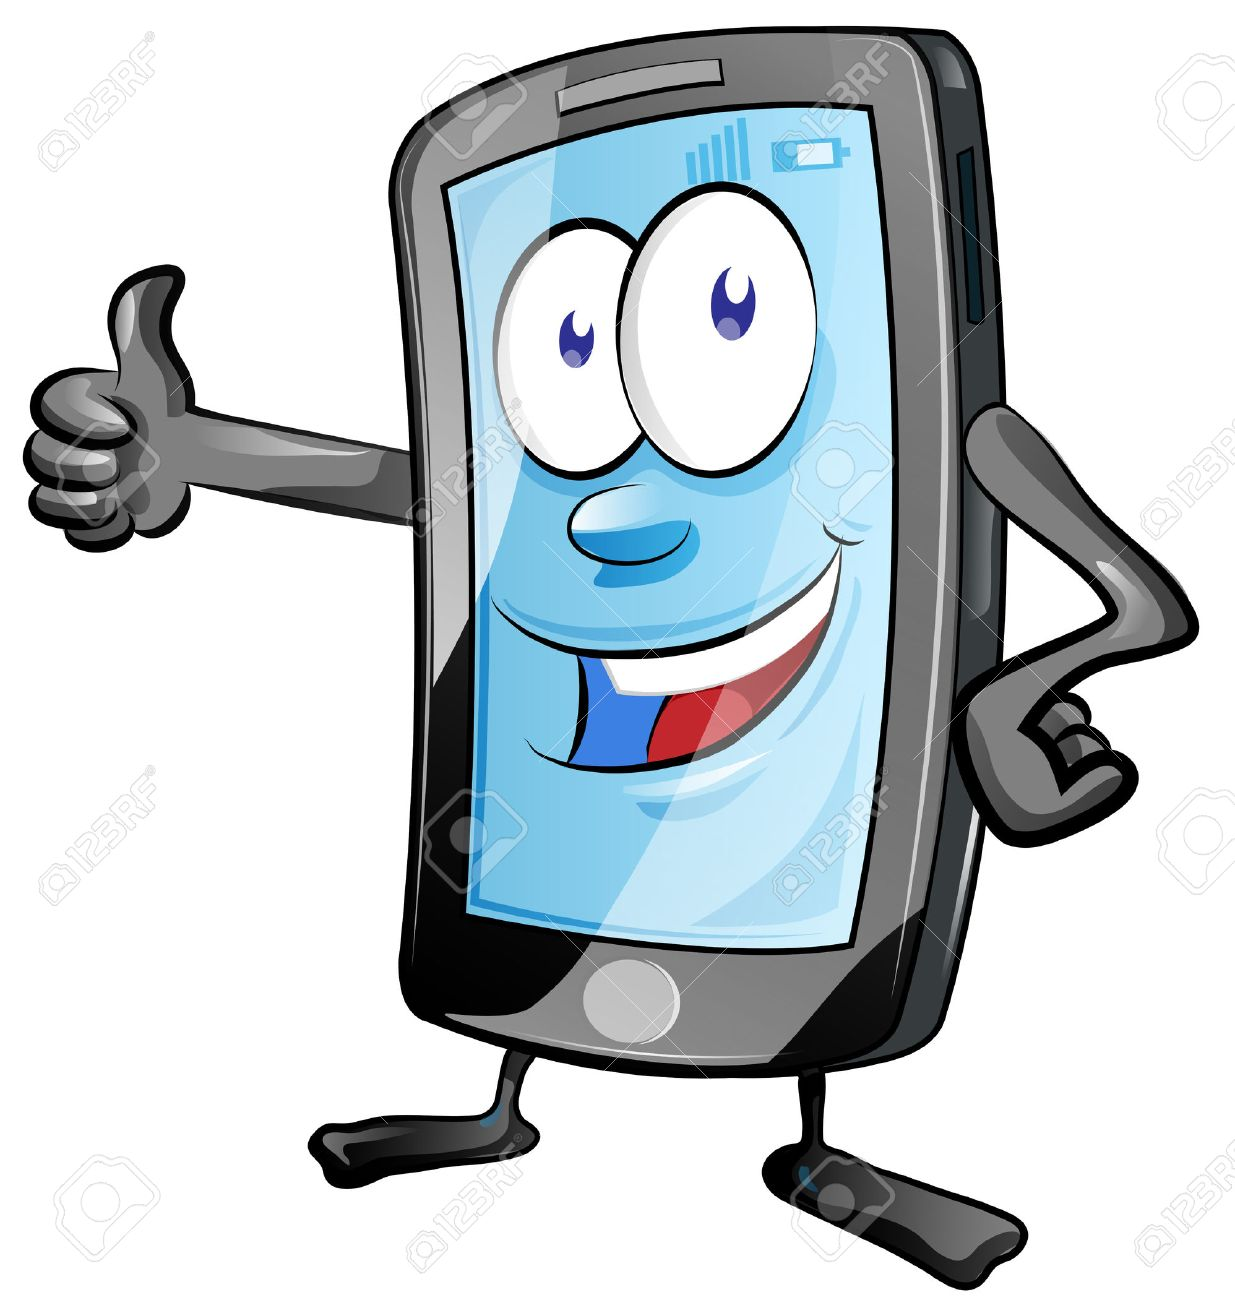 Fun Mobile Phone Cartoon With Thumbs Up Royalty Free Cliparts Vectors And Stock Illustration Image 43683599